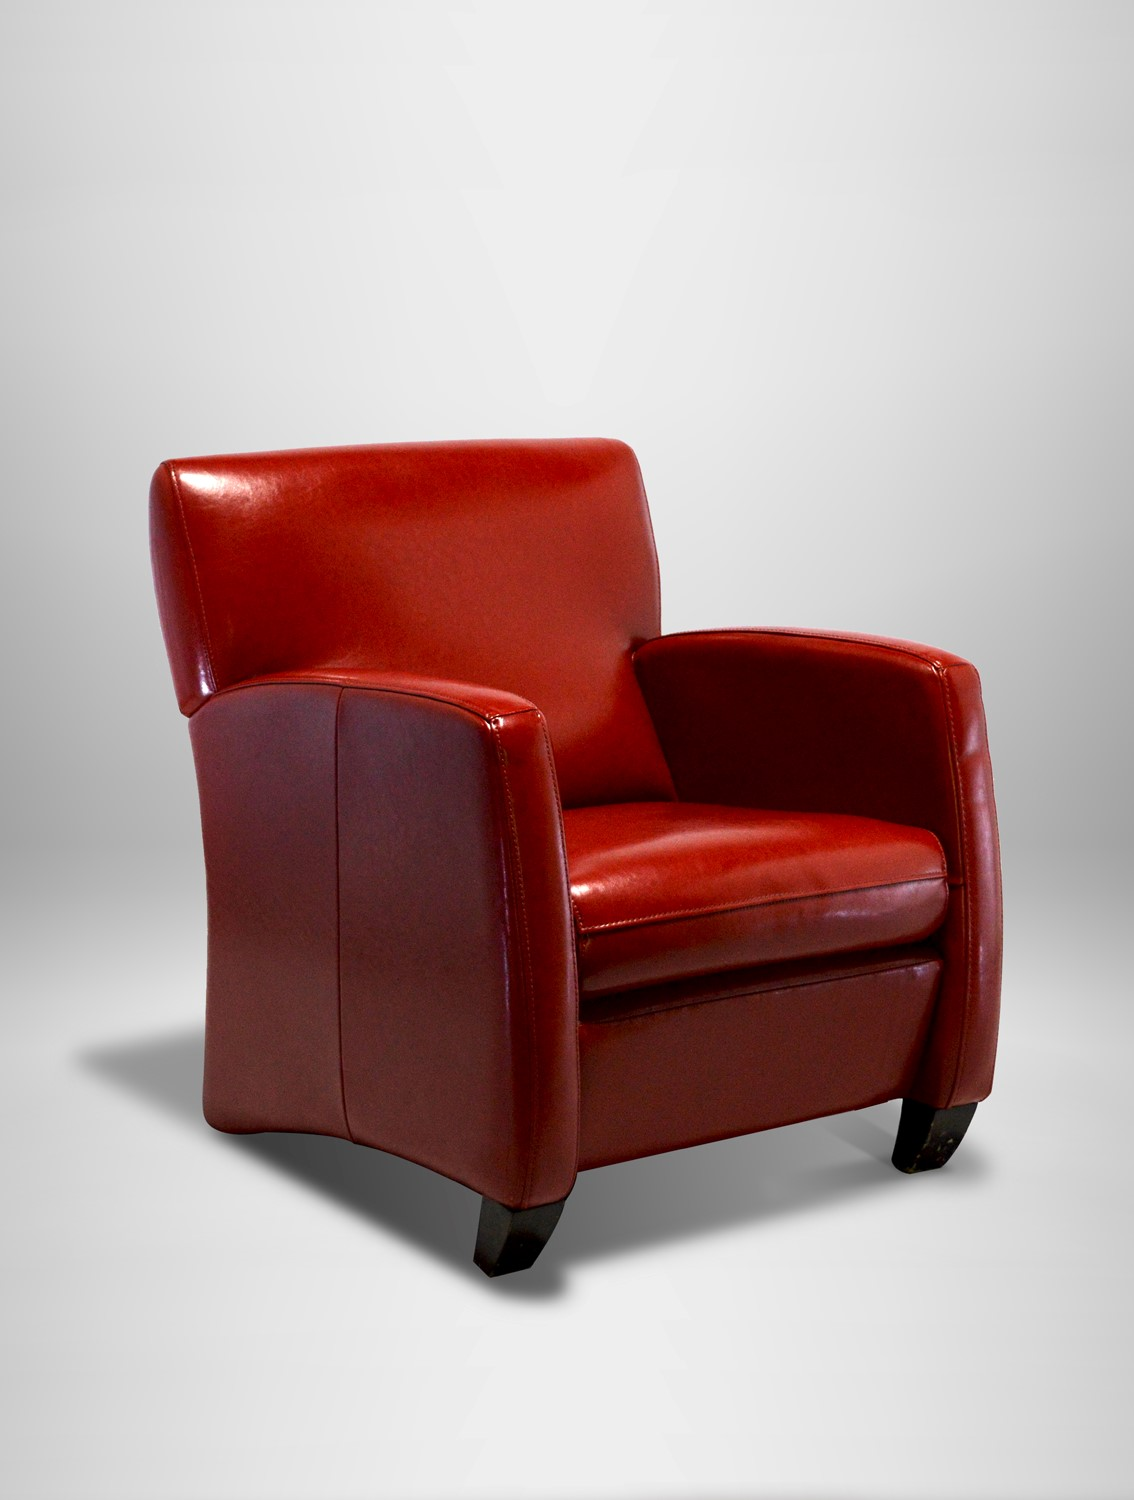 Leather Lounge Red Leather Lounge Chair